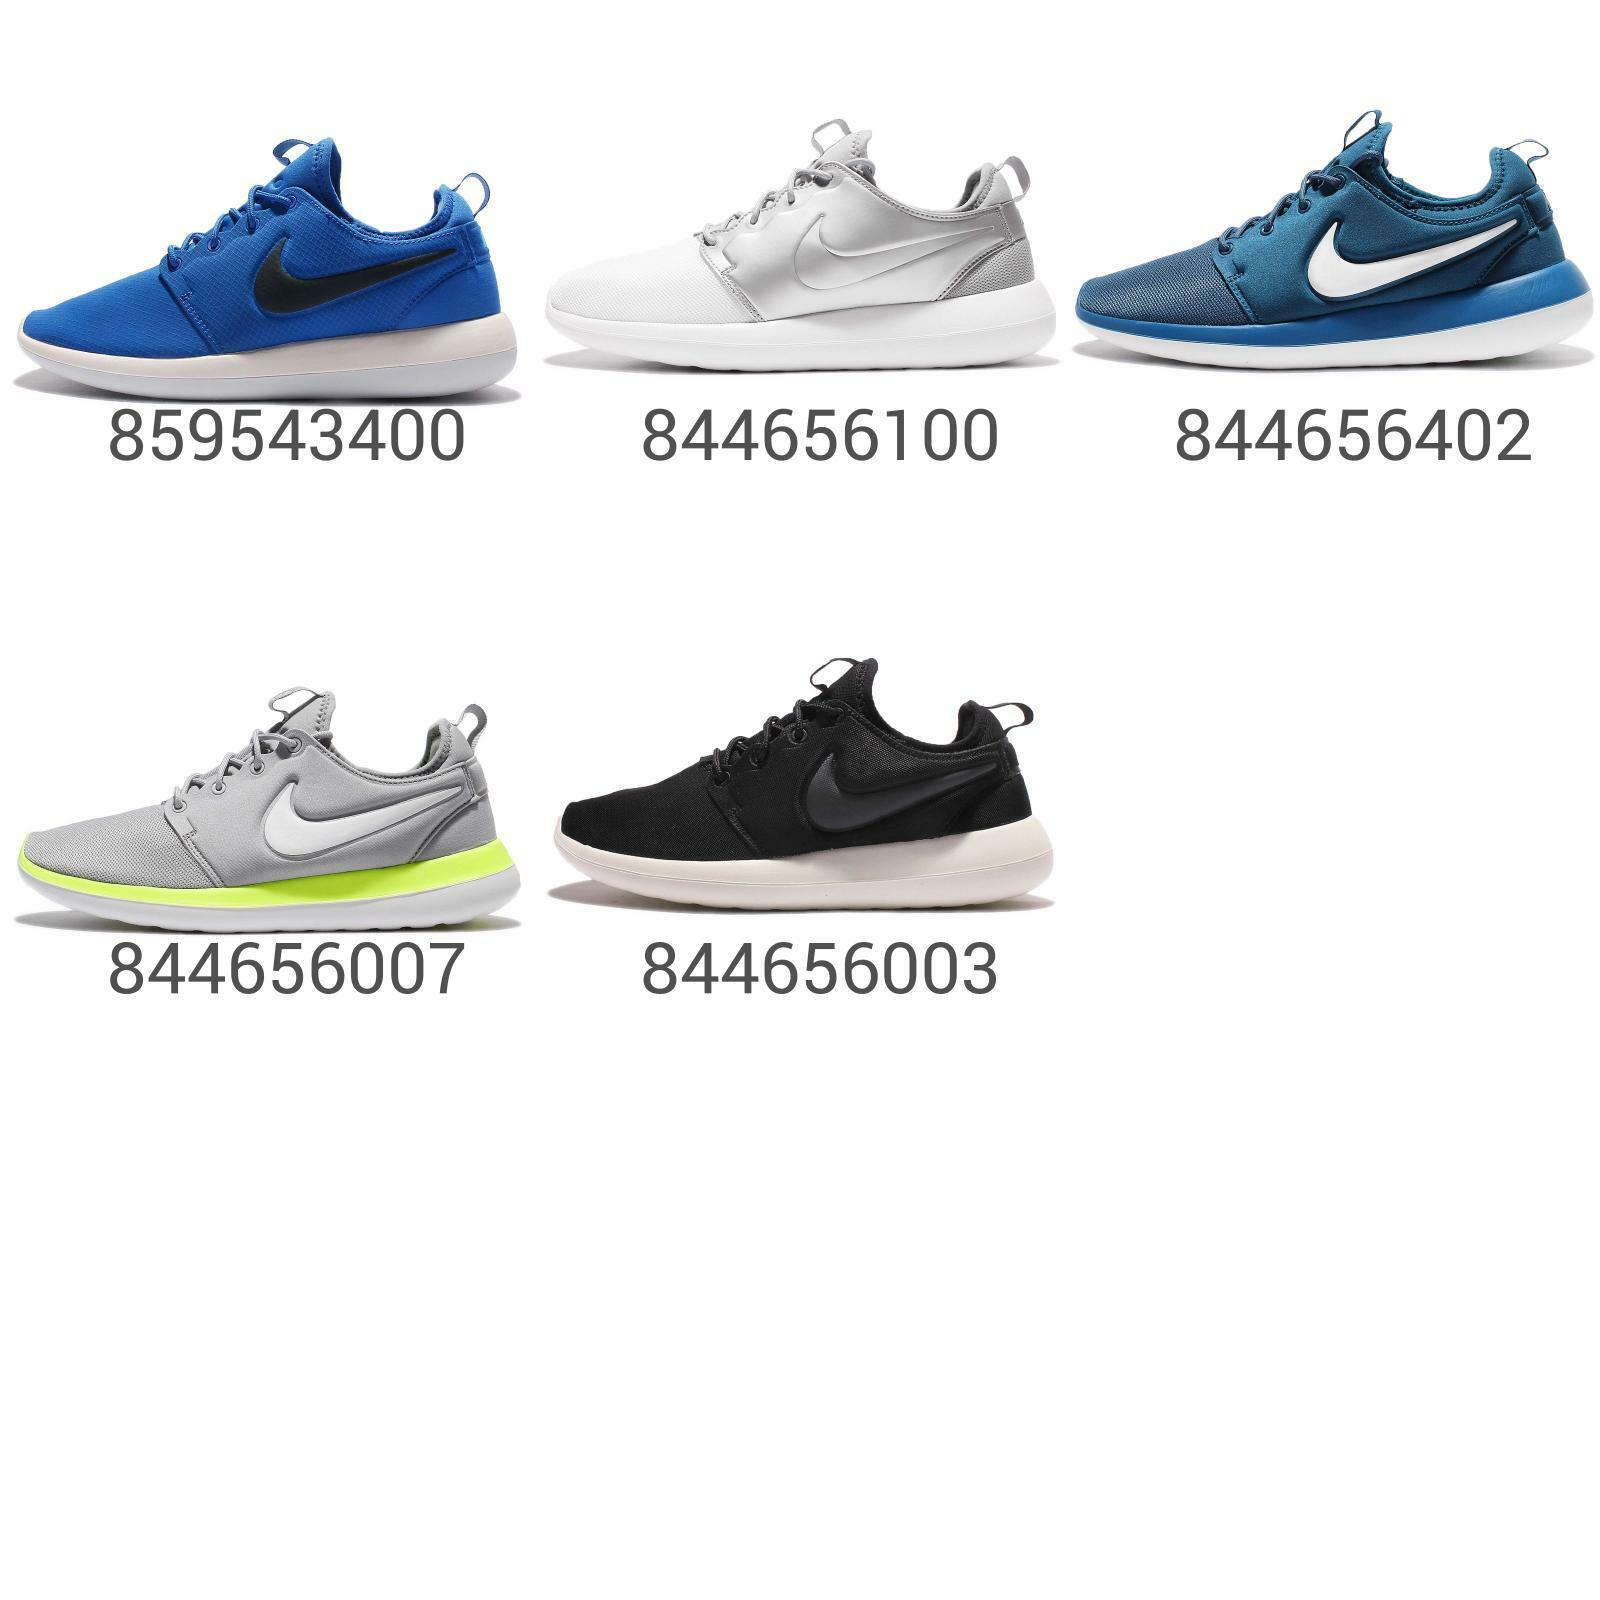 Nike Roshe Two 2 Run   SE  Mens Running shoes Lifestyle NSW Sneakers Pick 1